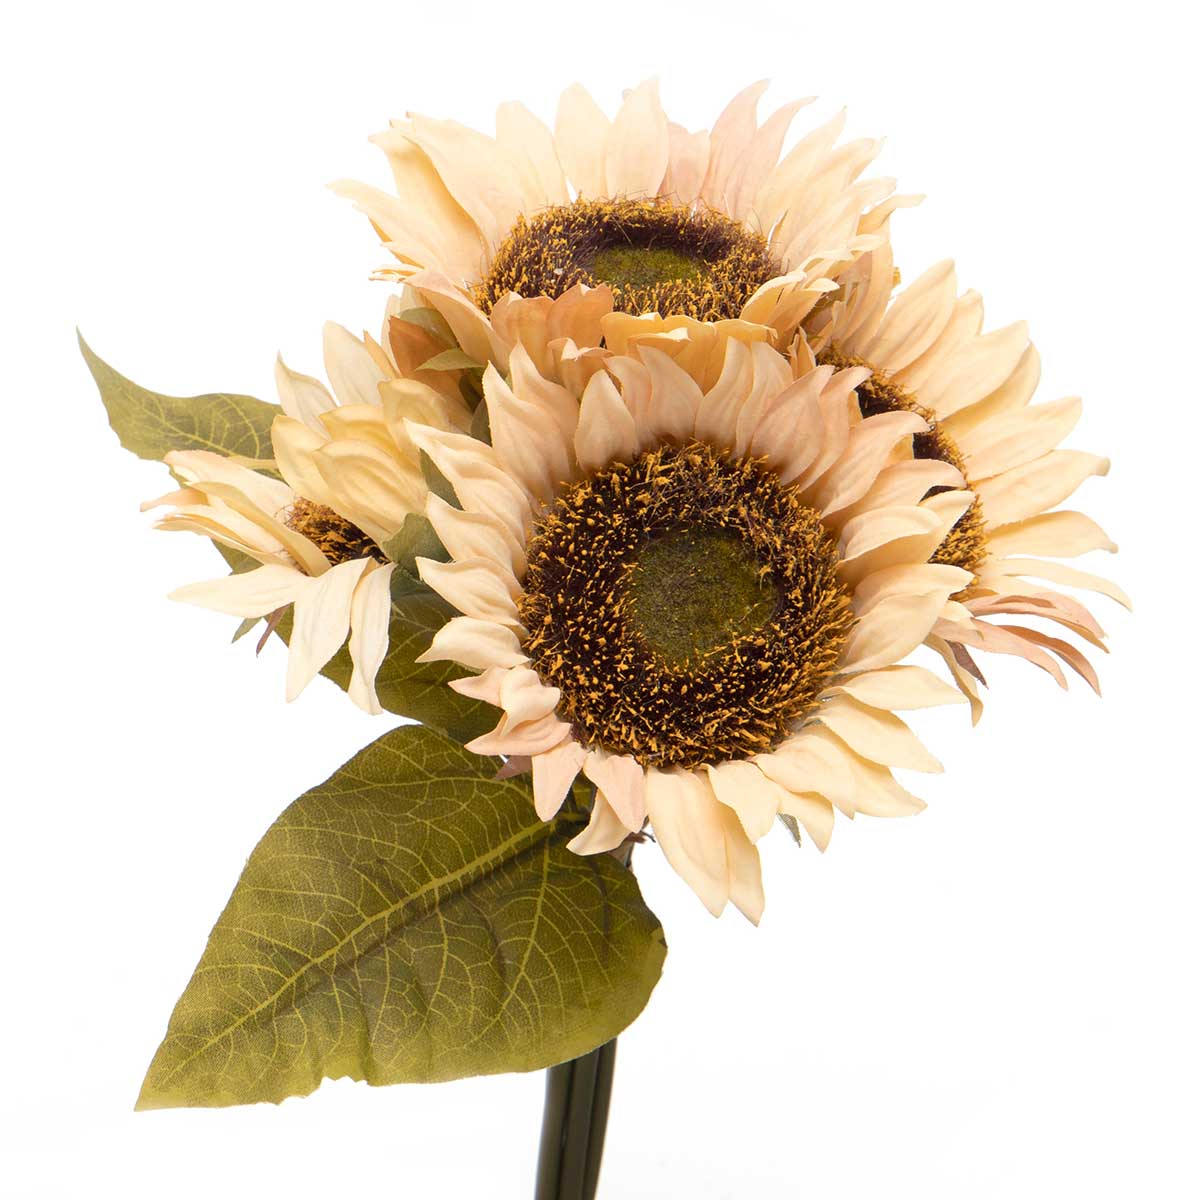 "SUNFLOWER BUNDLE OF 5 TIED WITH RAFFIA 10.5""X11"" RUST"